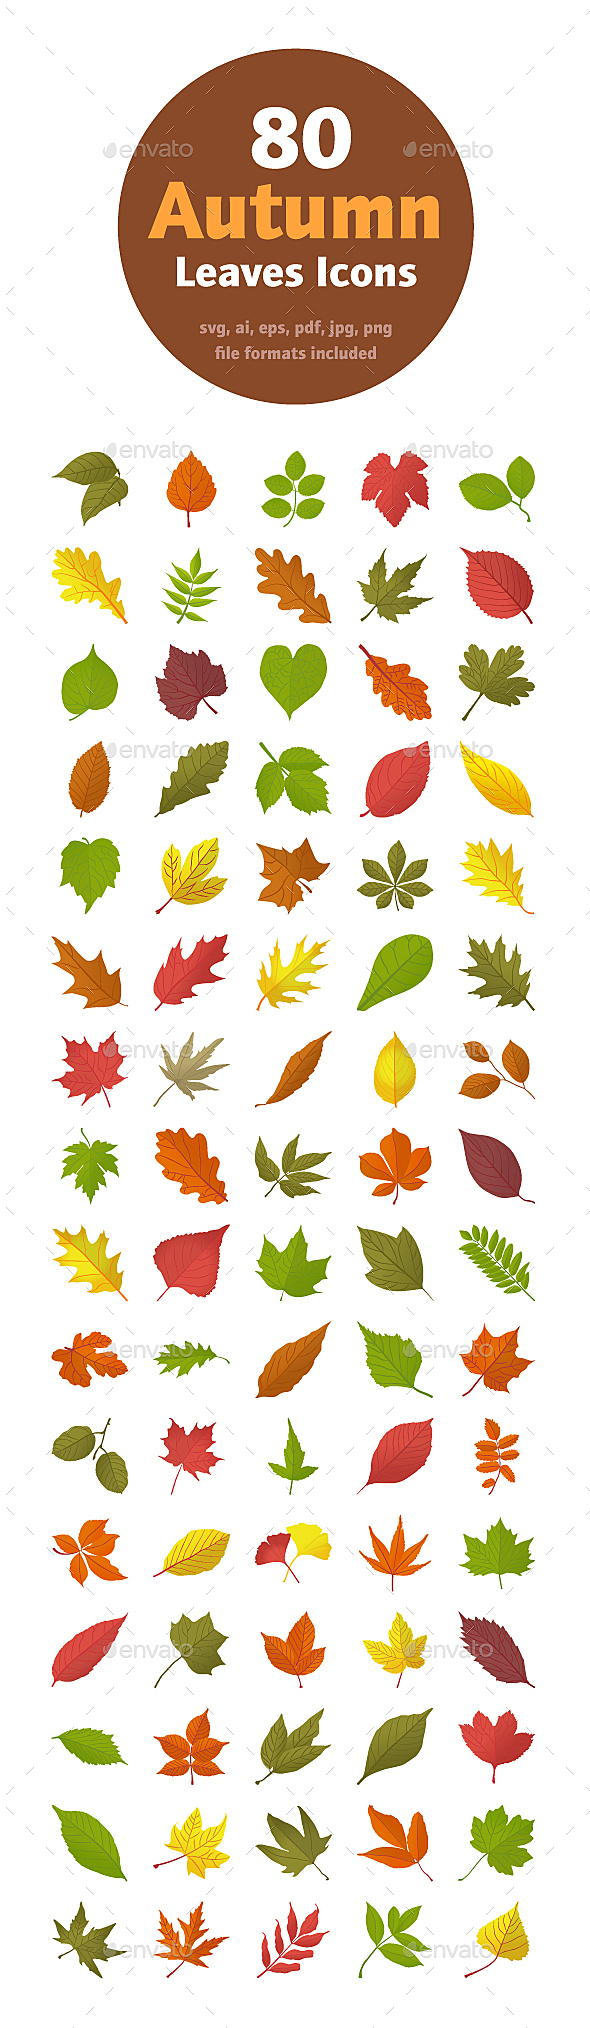 This colorful autumn leaves icons pack is offering various kinds of tree leaves usually seen in autumn season. A wonderfully designed set of colorful vectors having foliage leaves, dried leaves, fresh leaves of different structures. In this pack, you can find almost every kind of tree leaves, their specie and biological name such as birch leaf, aspen leaves, maples, sorbus americana, oak, elm and so on. If you are having subjects related to botany or havig garden projects, you must hold this pack and utilize it in best way.   ai, eps, pdf, jpg, png, svg files included transparent png files included in 48×48, 64×64, 128×128, 256×256, 512×512